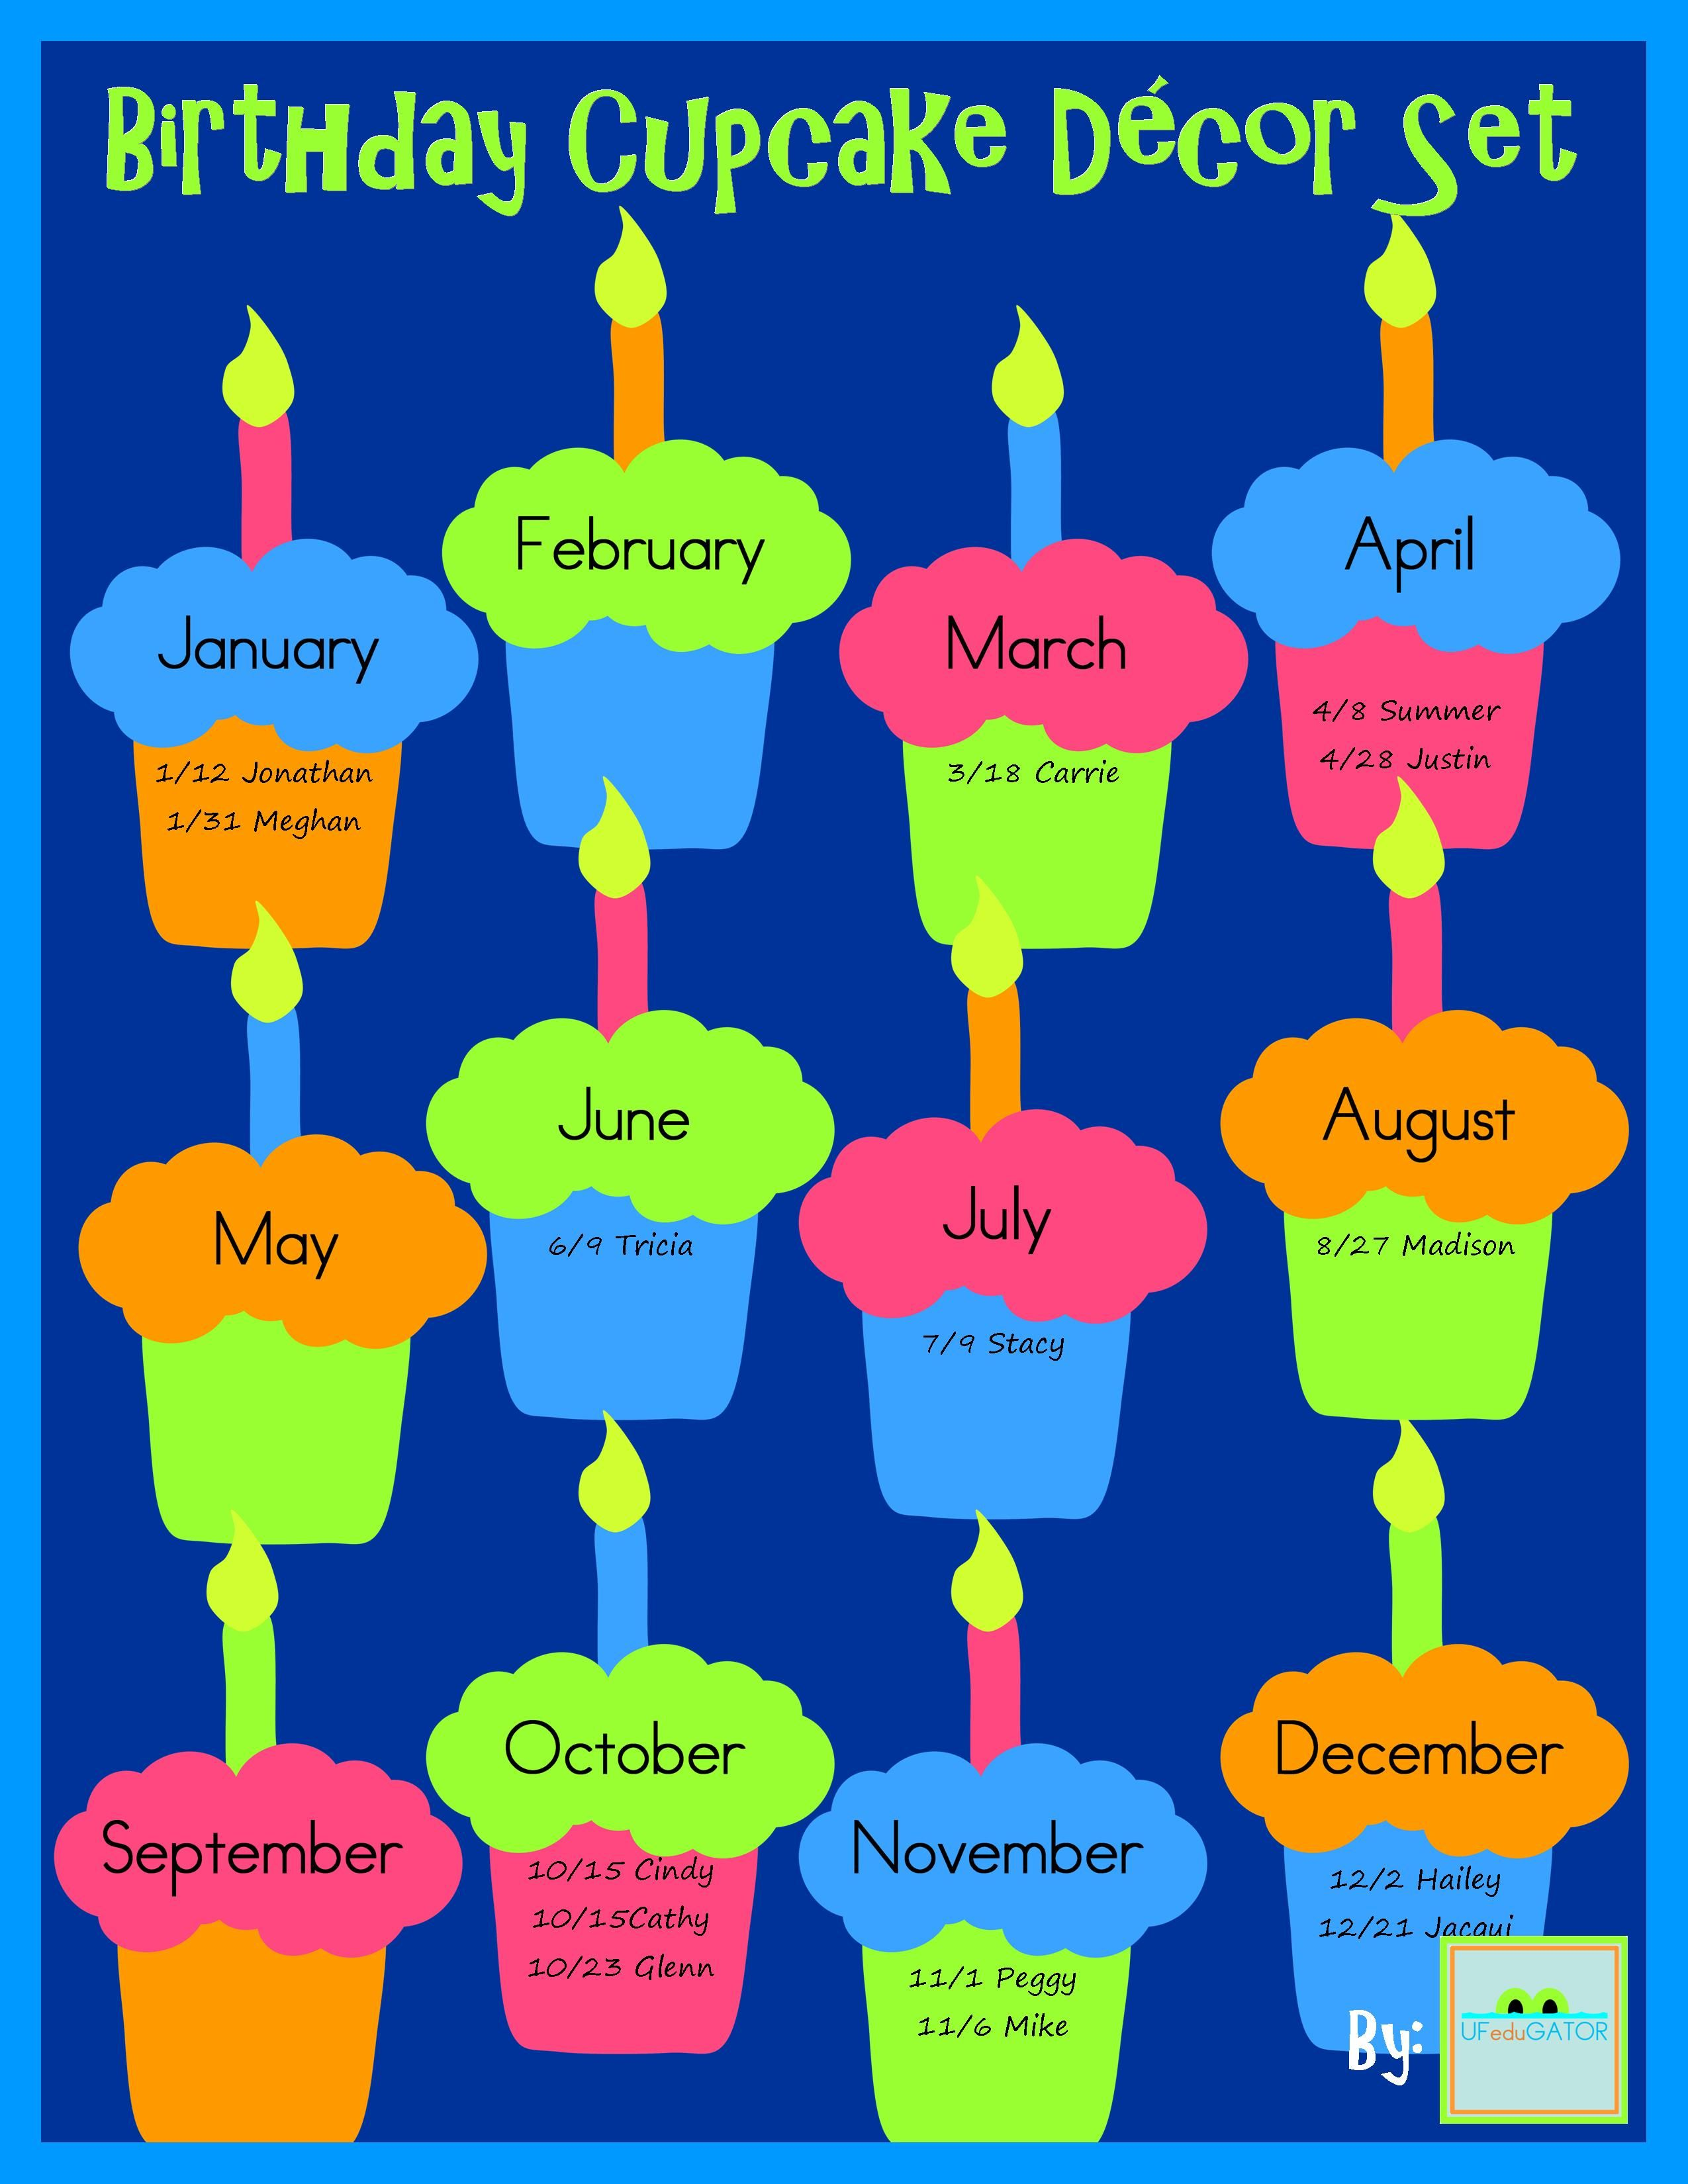 Birthday Cupcake Decor Set Chart Classroombirthday Also My Handmade Cards For Classroom School Ideas In Rh